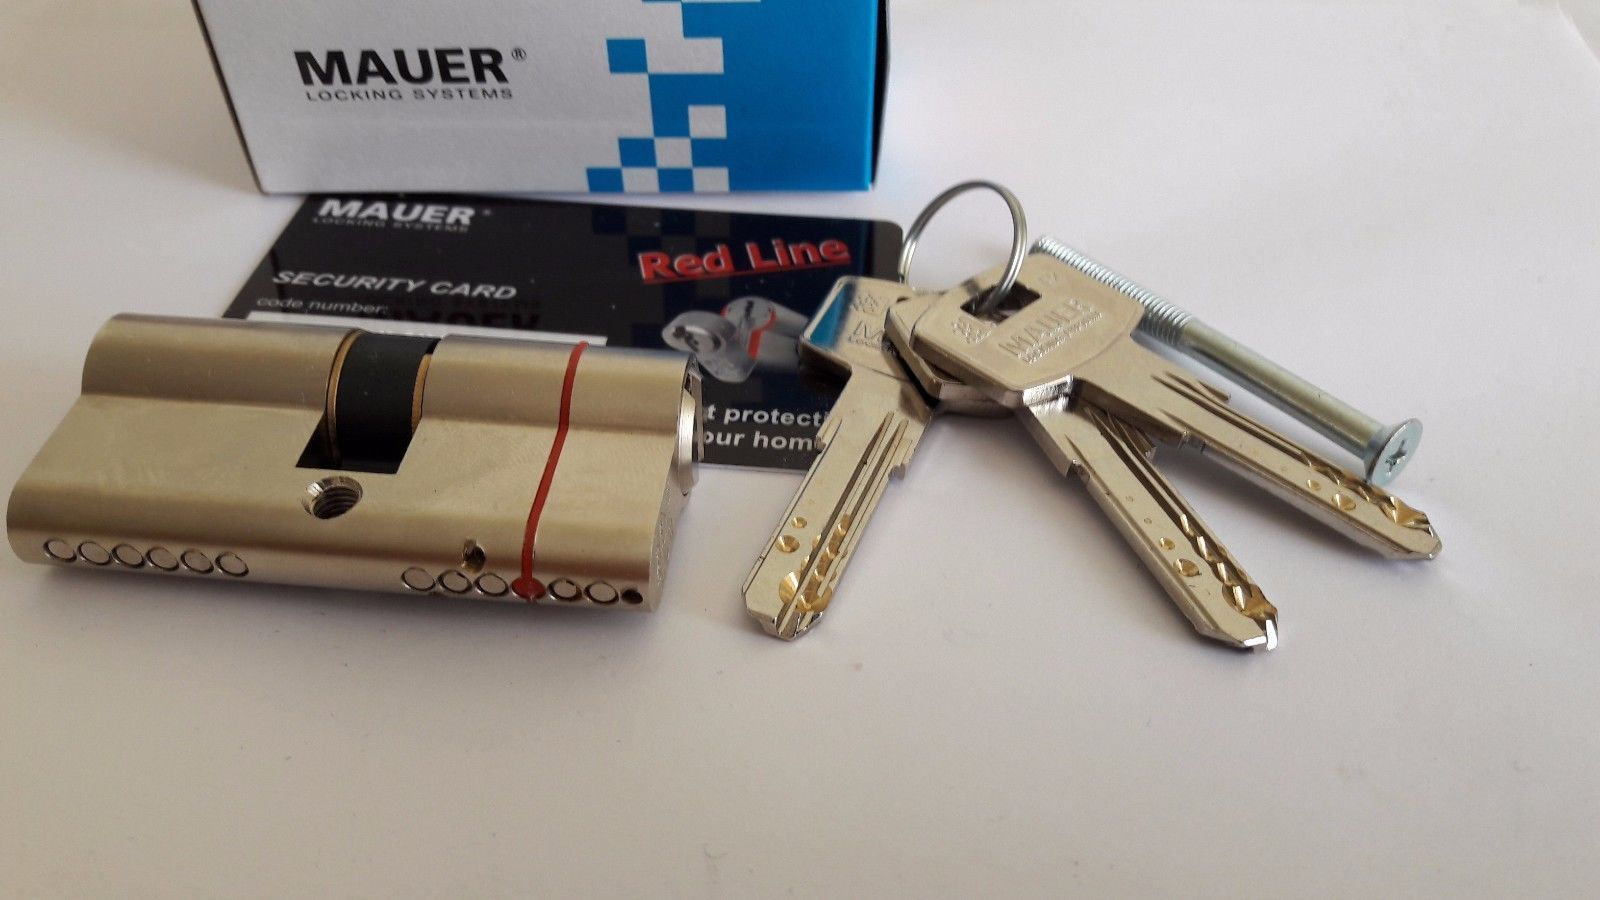 MAUER ELIT 2 Red Line High Security Break and 50 similar items